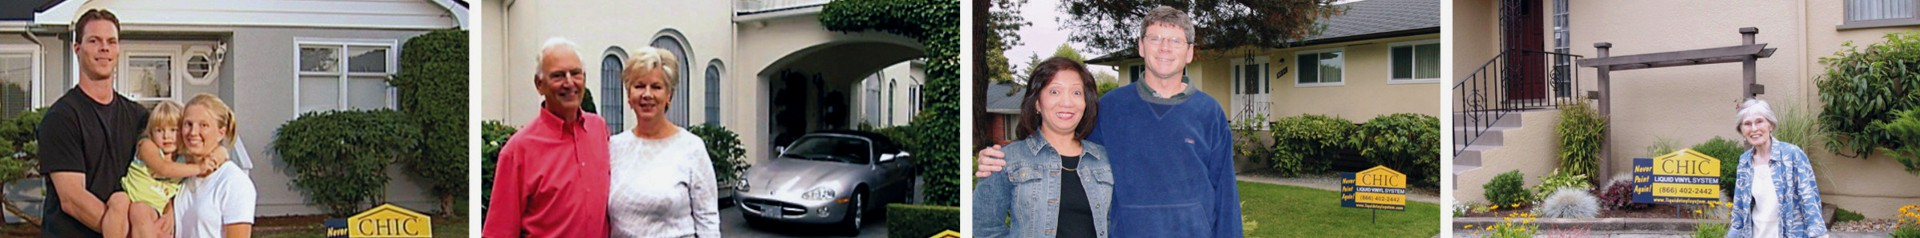 Valued CHIC Advanced Coating customers posing for photos in front of their homes.